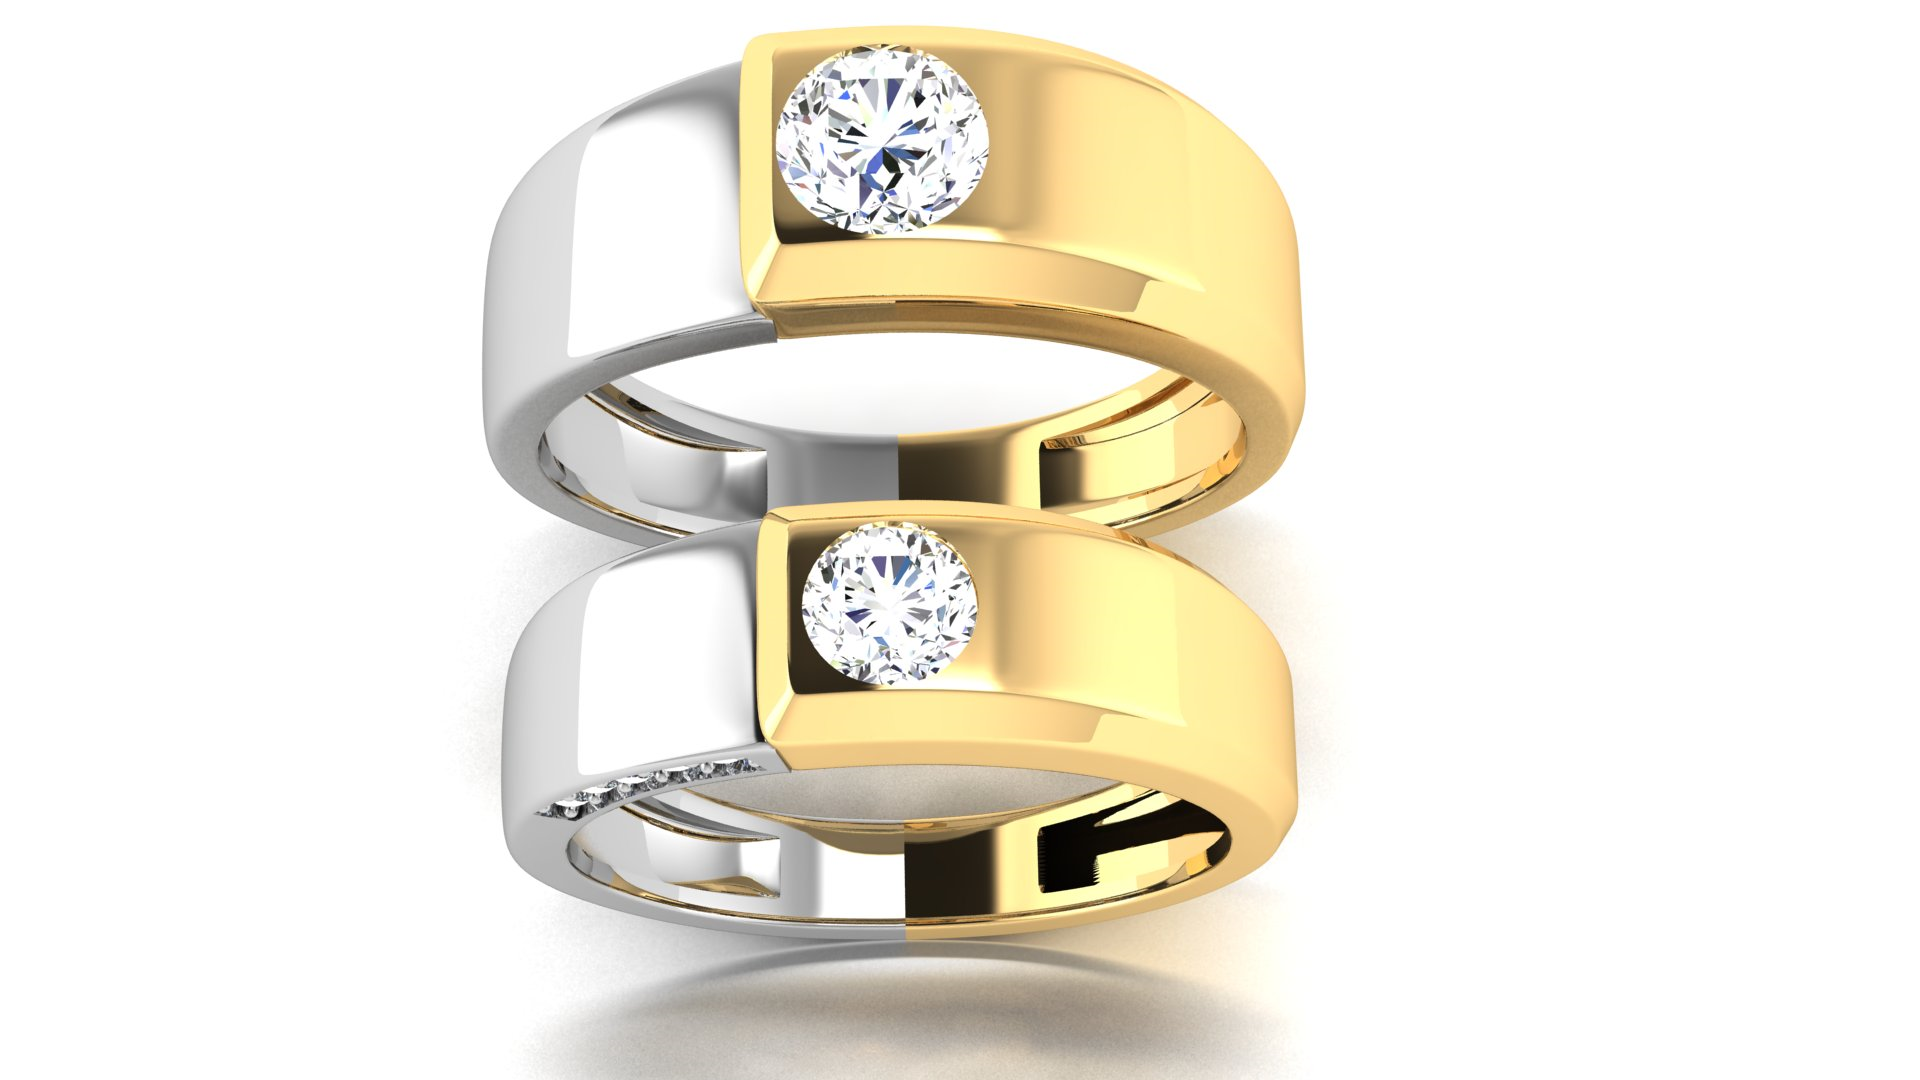 Amazing Couple Rings with Single Diamond Design